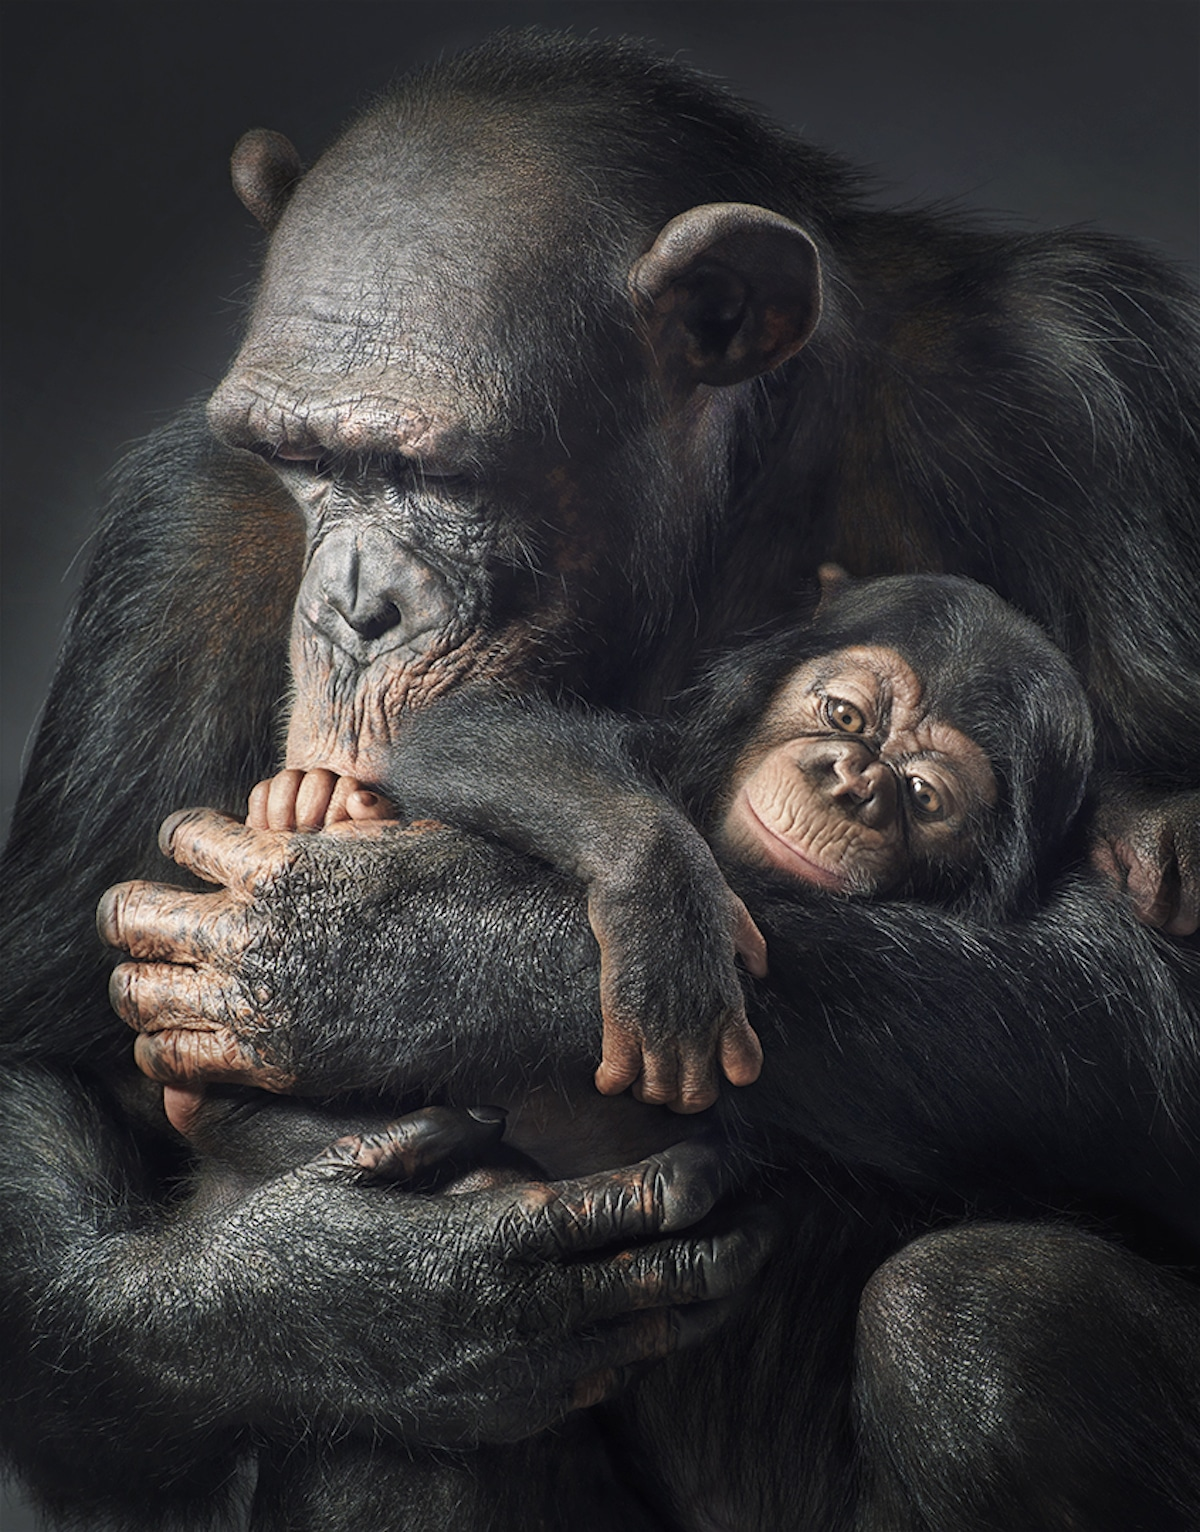 Most Endangered Animals by Tim Flach